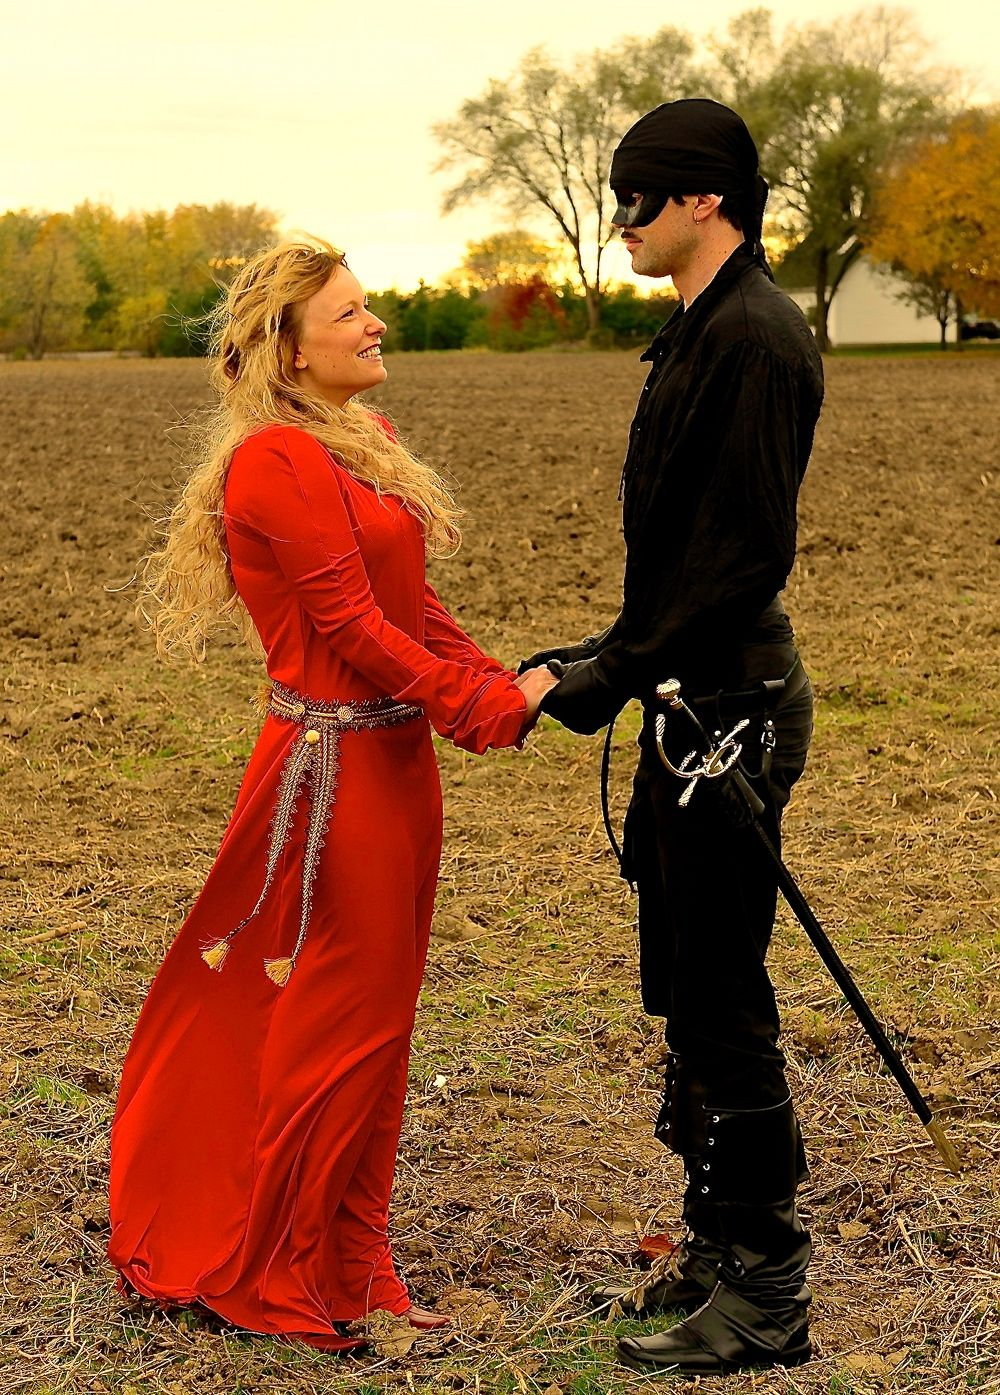 Cole would make the cutest baby Pirate! Sean would be a sexy Dread Pirate Roberts. Buttercup u0026 The Dread Pirate Roberts - cute couples halloween costume  sc 1 st  Pinterest & Buttercup u0026 The Dread Pirate Roberts - cute couples halloween ...